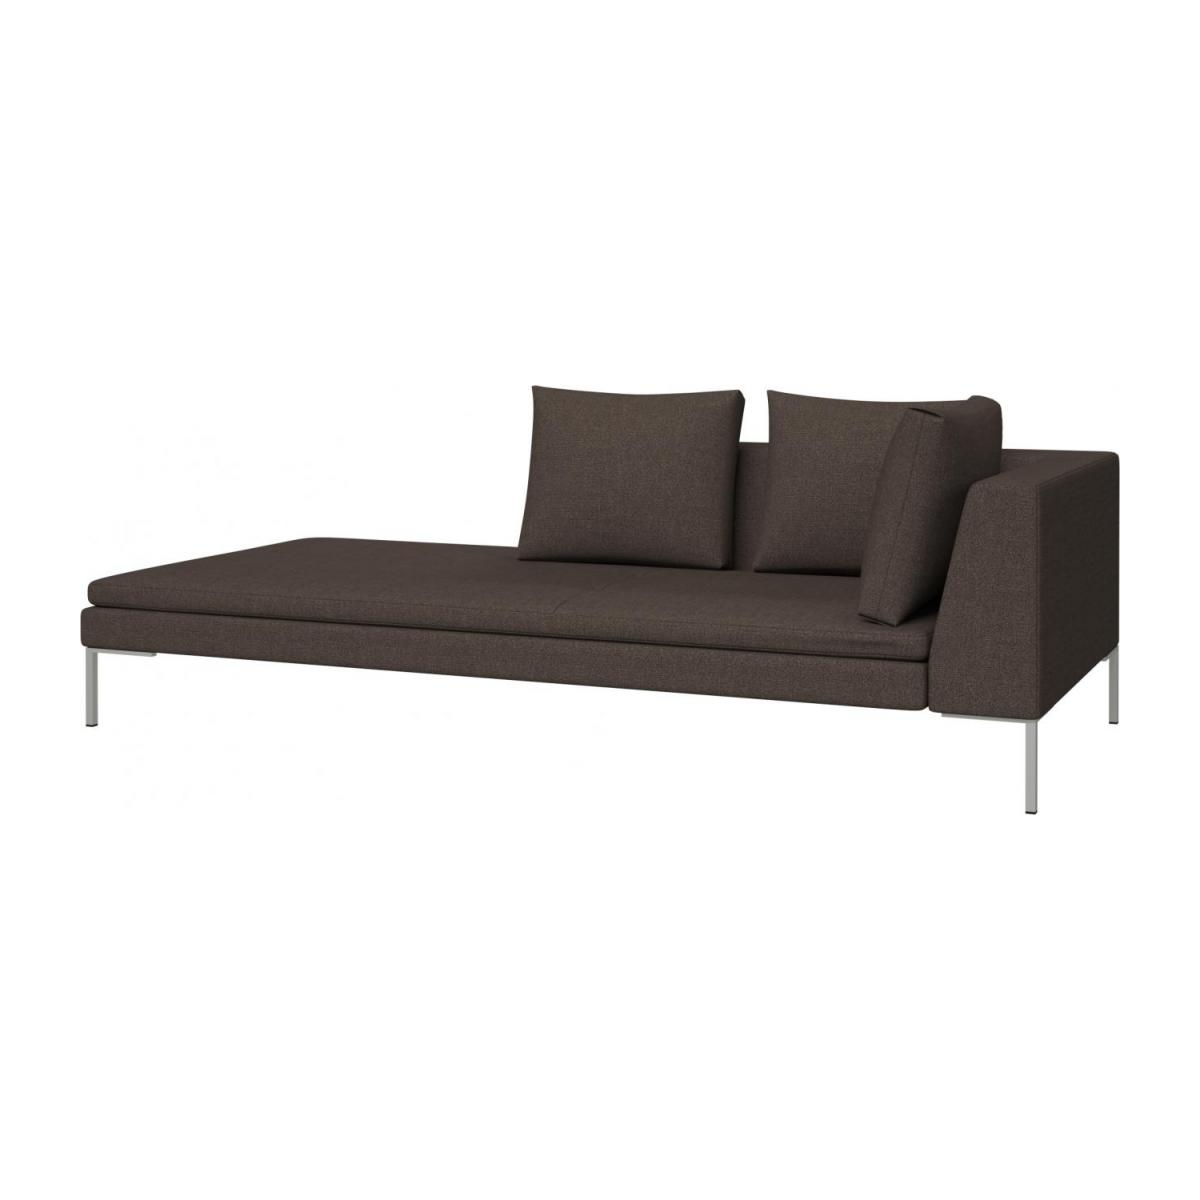 Chaiselongue, links aus Lecce-Stoff - Braun n°1